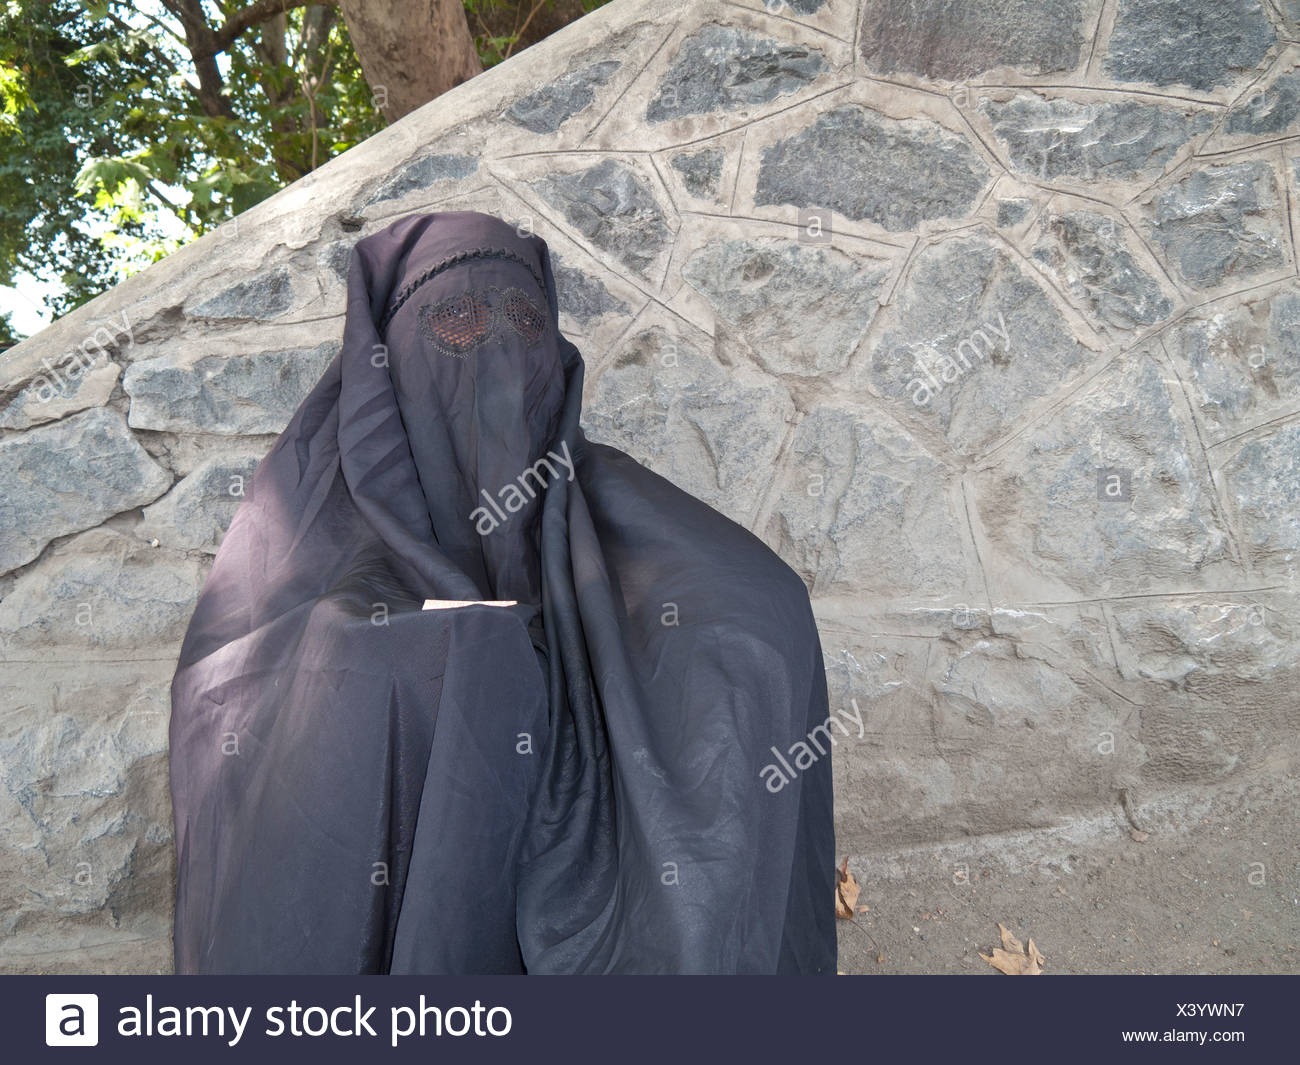 Muslim woman dressed in a burka, in traditional area of Srinagar, Jammu and Kashmir, India, Asia - Stock Image